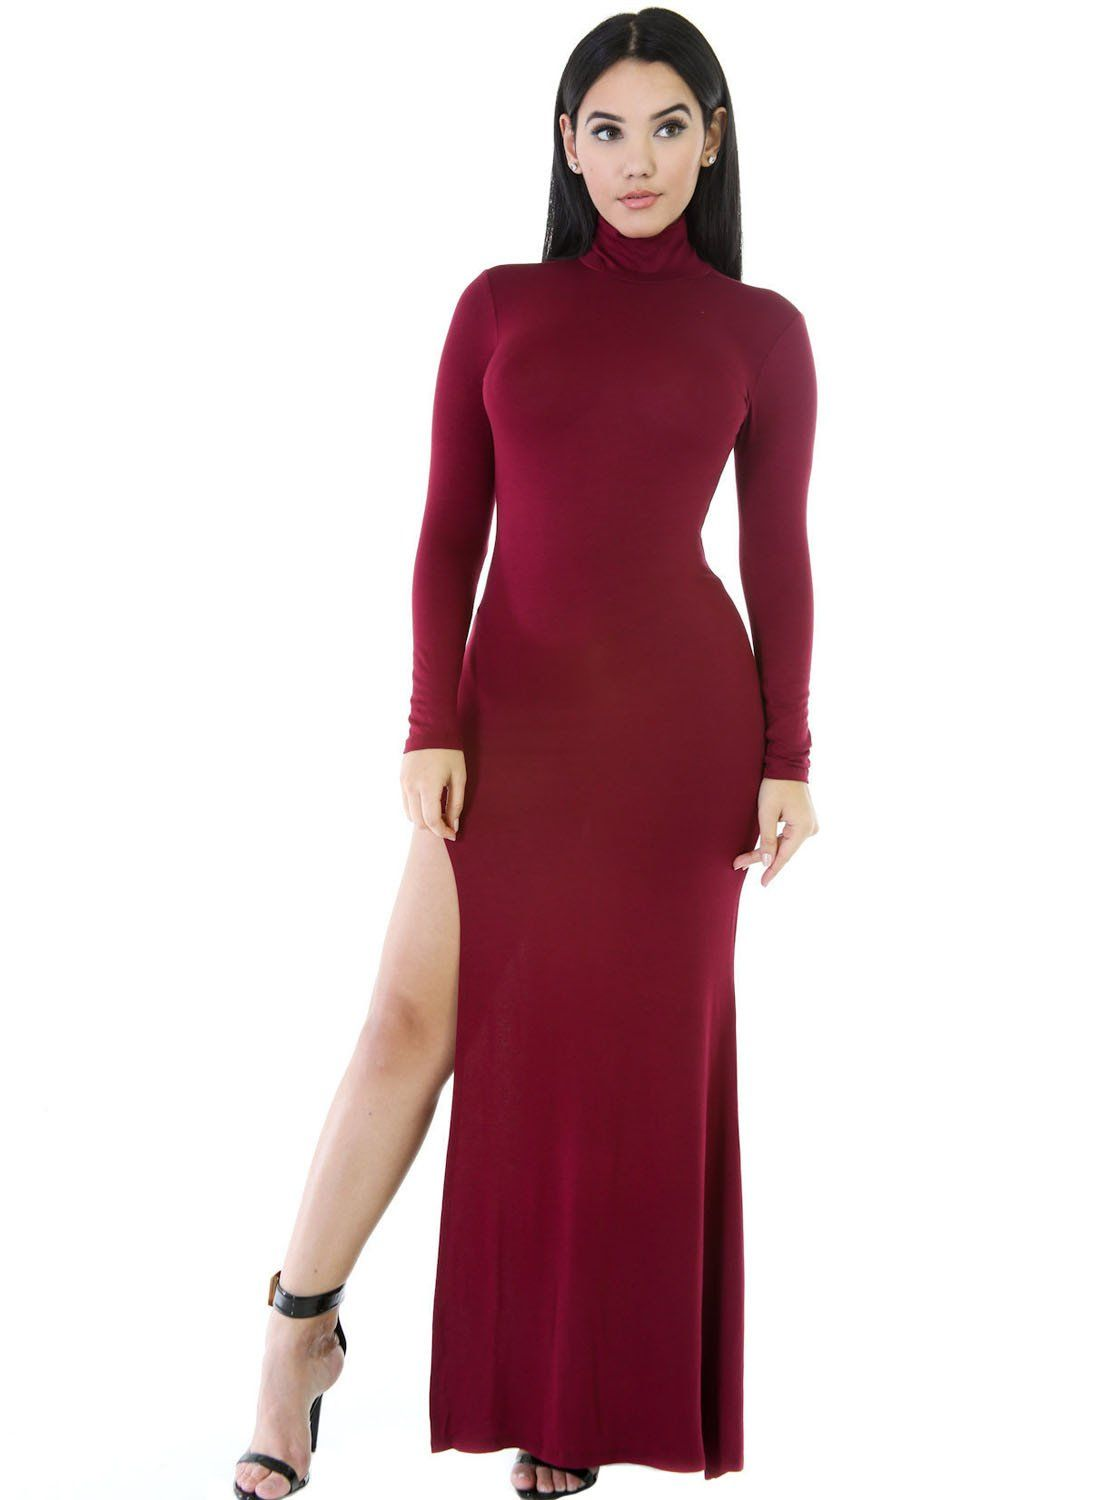 Robes Maxi Jersey Vin Rouge Manches Longues Cote Fendu Col Roule Pas Cher  www.modebuy.com  Modebuy  Modebuy  Rouge fddf433d160d